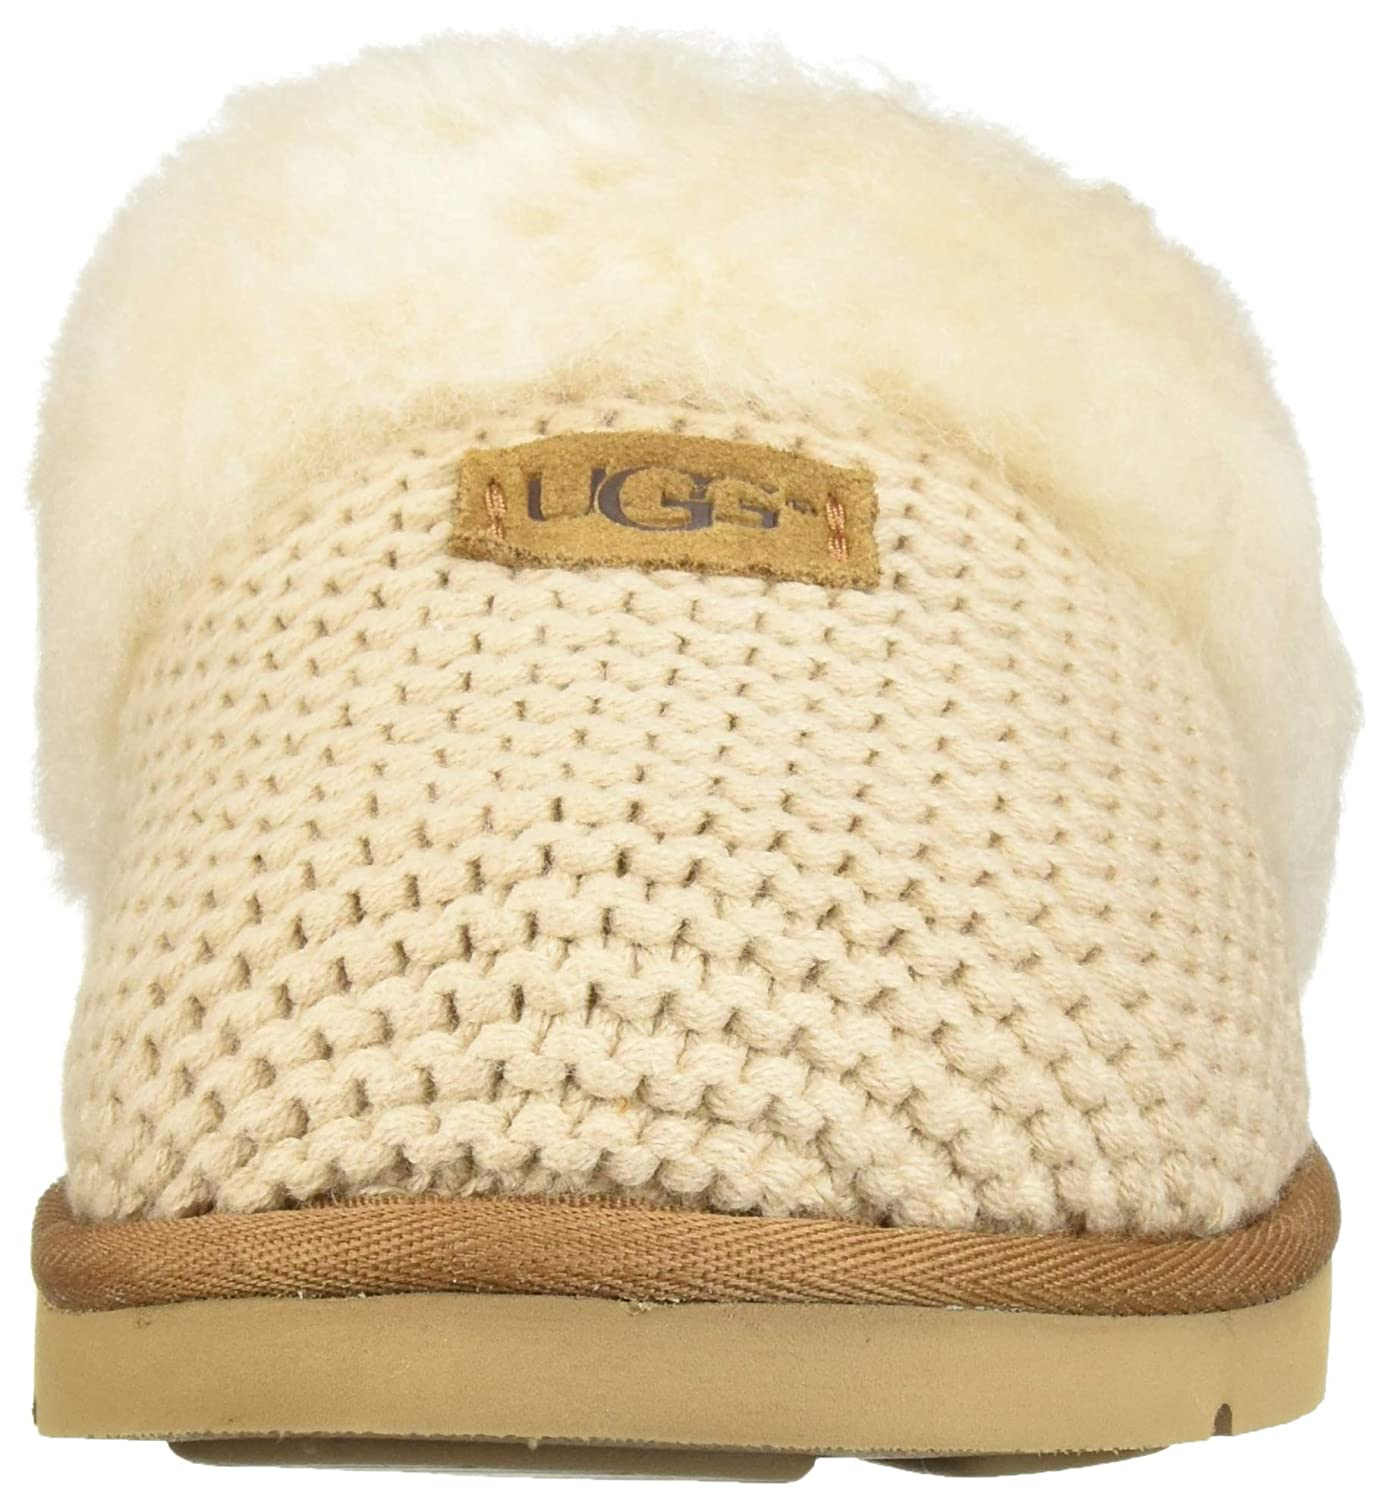 4ff8a3d31 UGG - Cozy Knit Slippers - Cream - Soft Sheepskin Slippers (39 EU):  Amazon.co.uk: Shoes & Bags